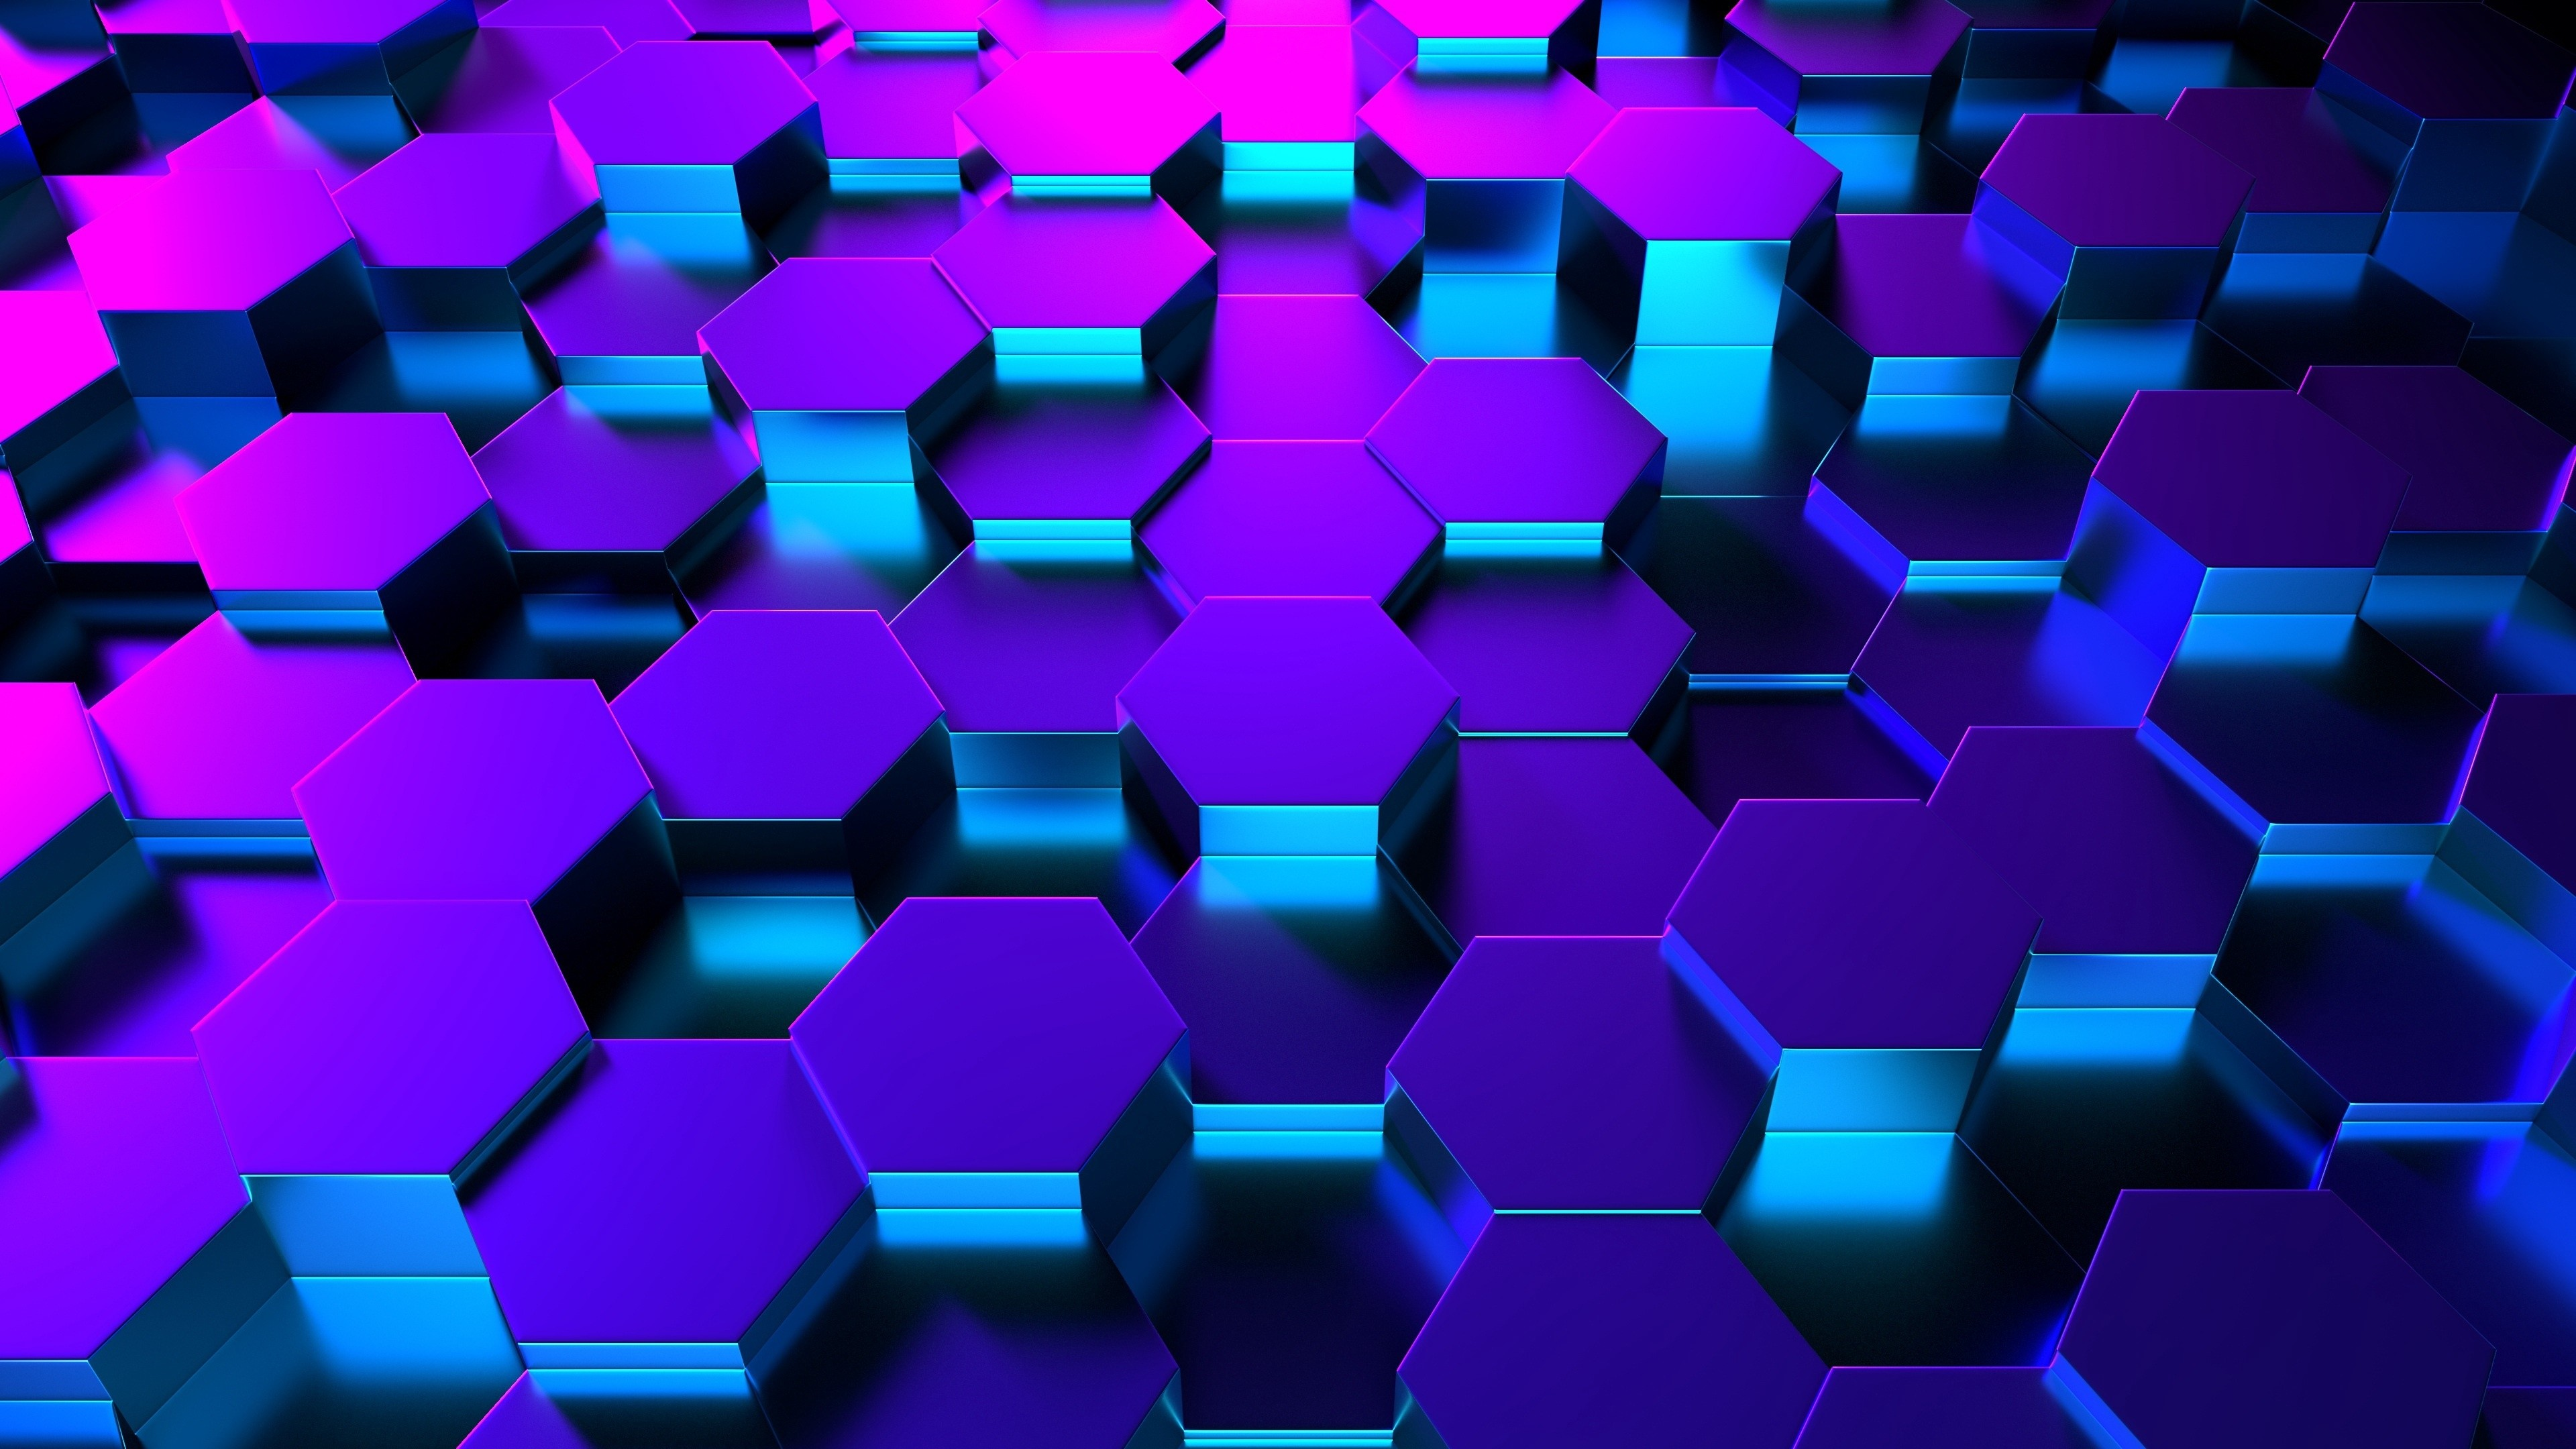 Res: 3840x2160, Blue 3D Hexagons Wallpaper   Wallpaper Studio 10   Tens of thousands HD and  UltraHD wallpapers for Android, Windows and Xbox